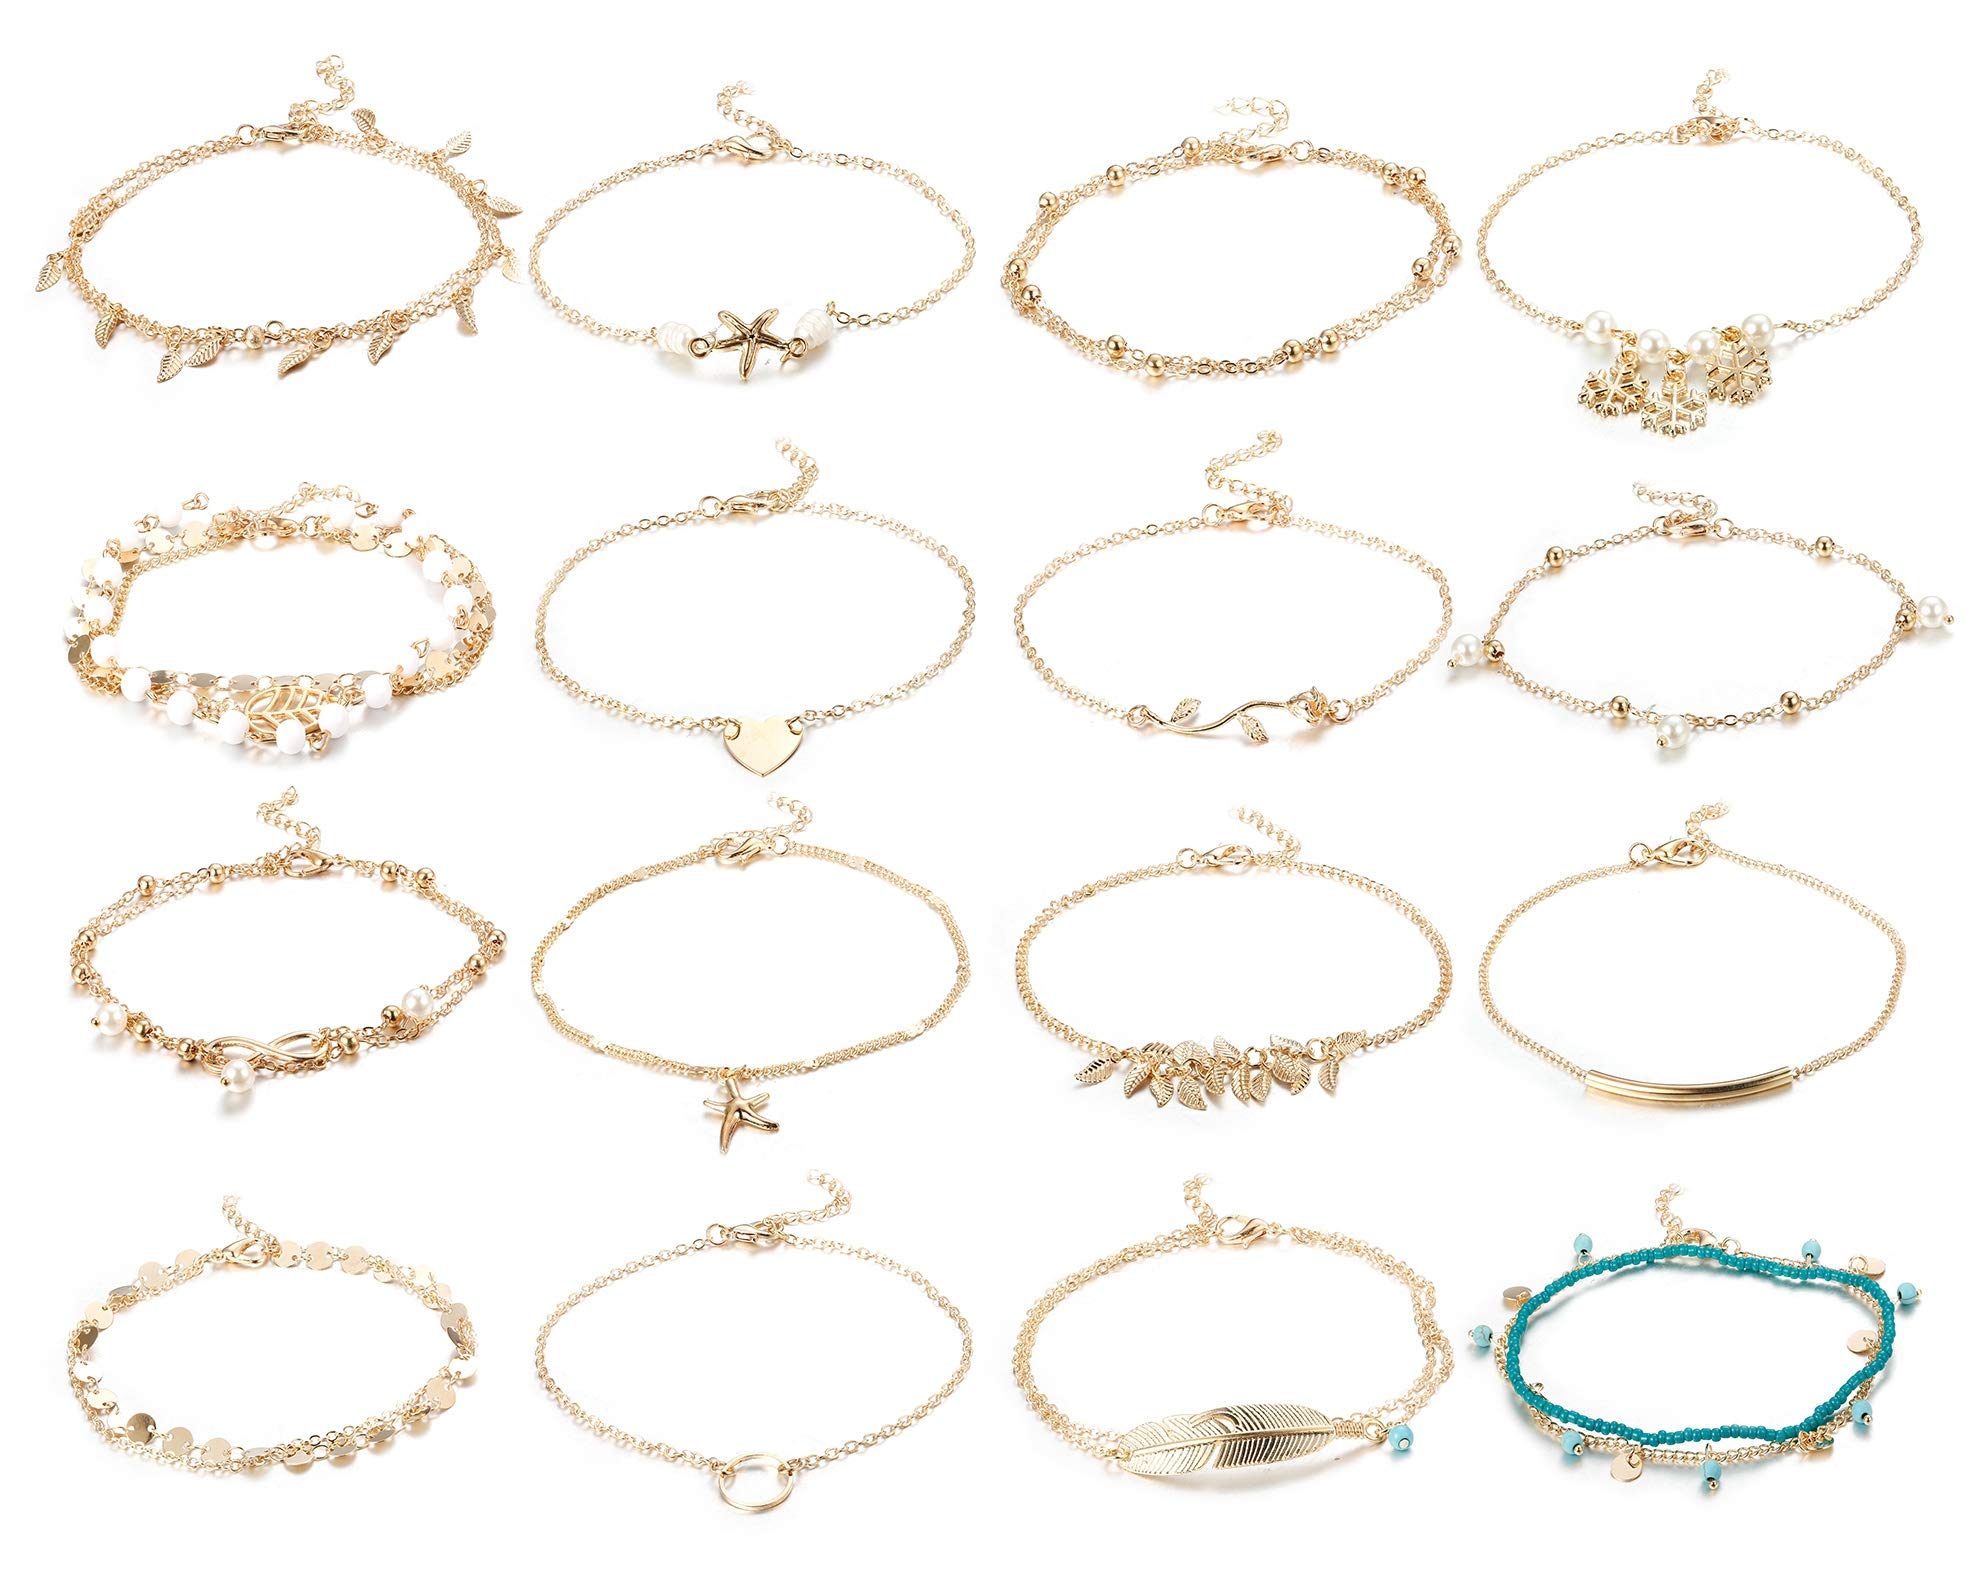 Finrezio 16 Pcs Anklets for Women Gold Silver Plated Ankle Bracelets Beach Cute Sexy Charm Foot Jewelry for Teen Girls Adjustable